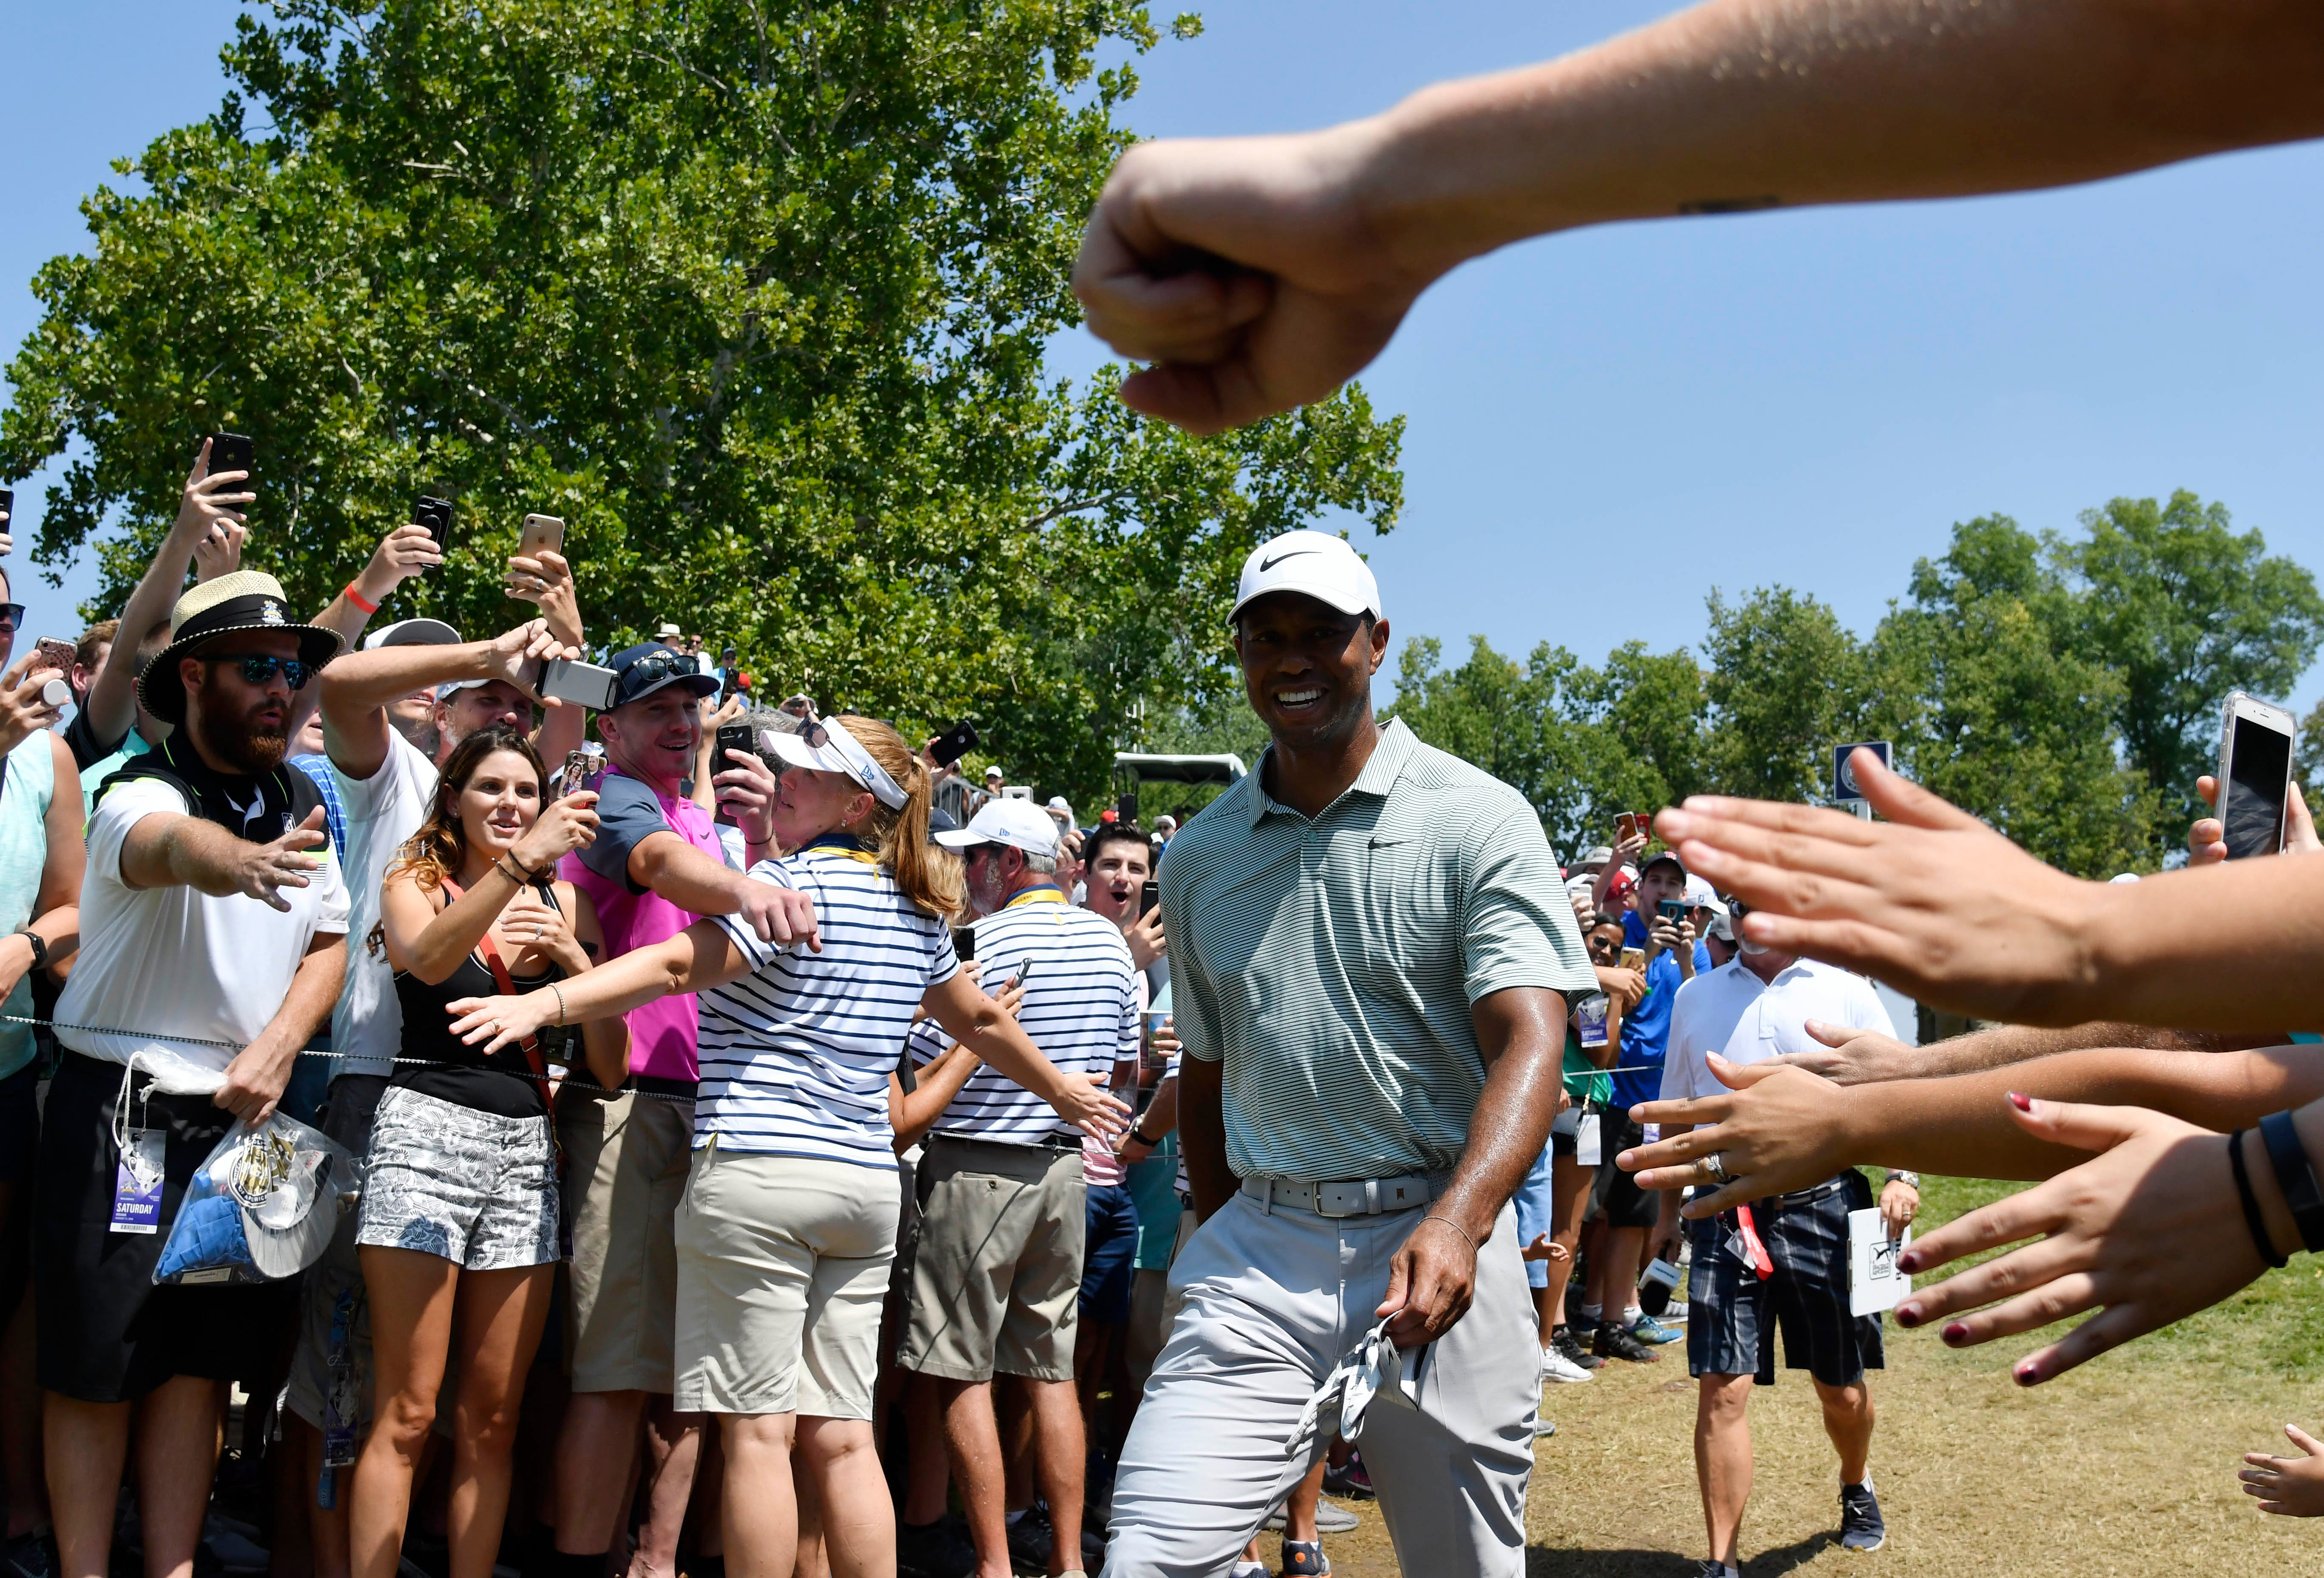 The Tiger Effect revs up PGA Championship fans to a frenzy